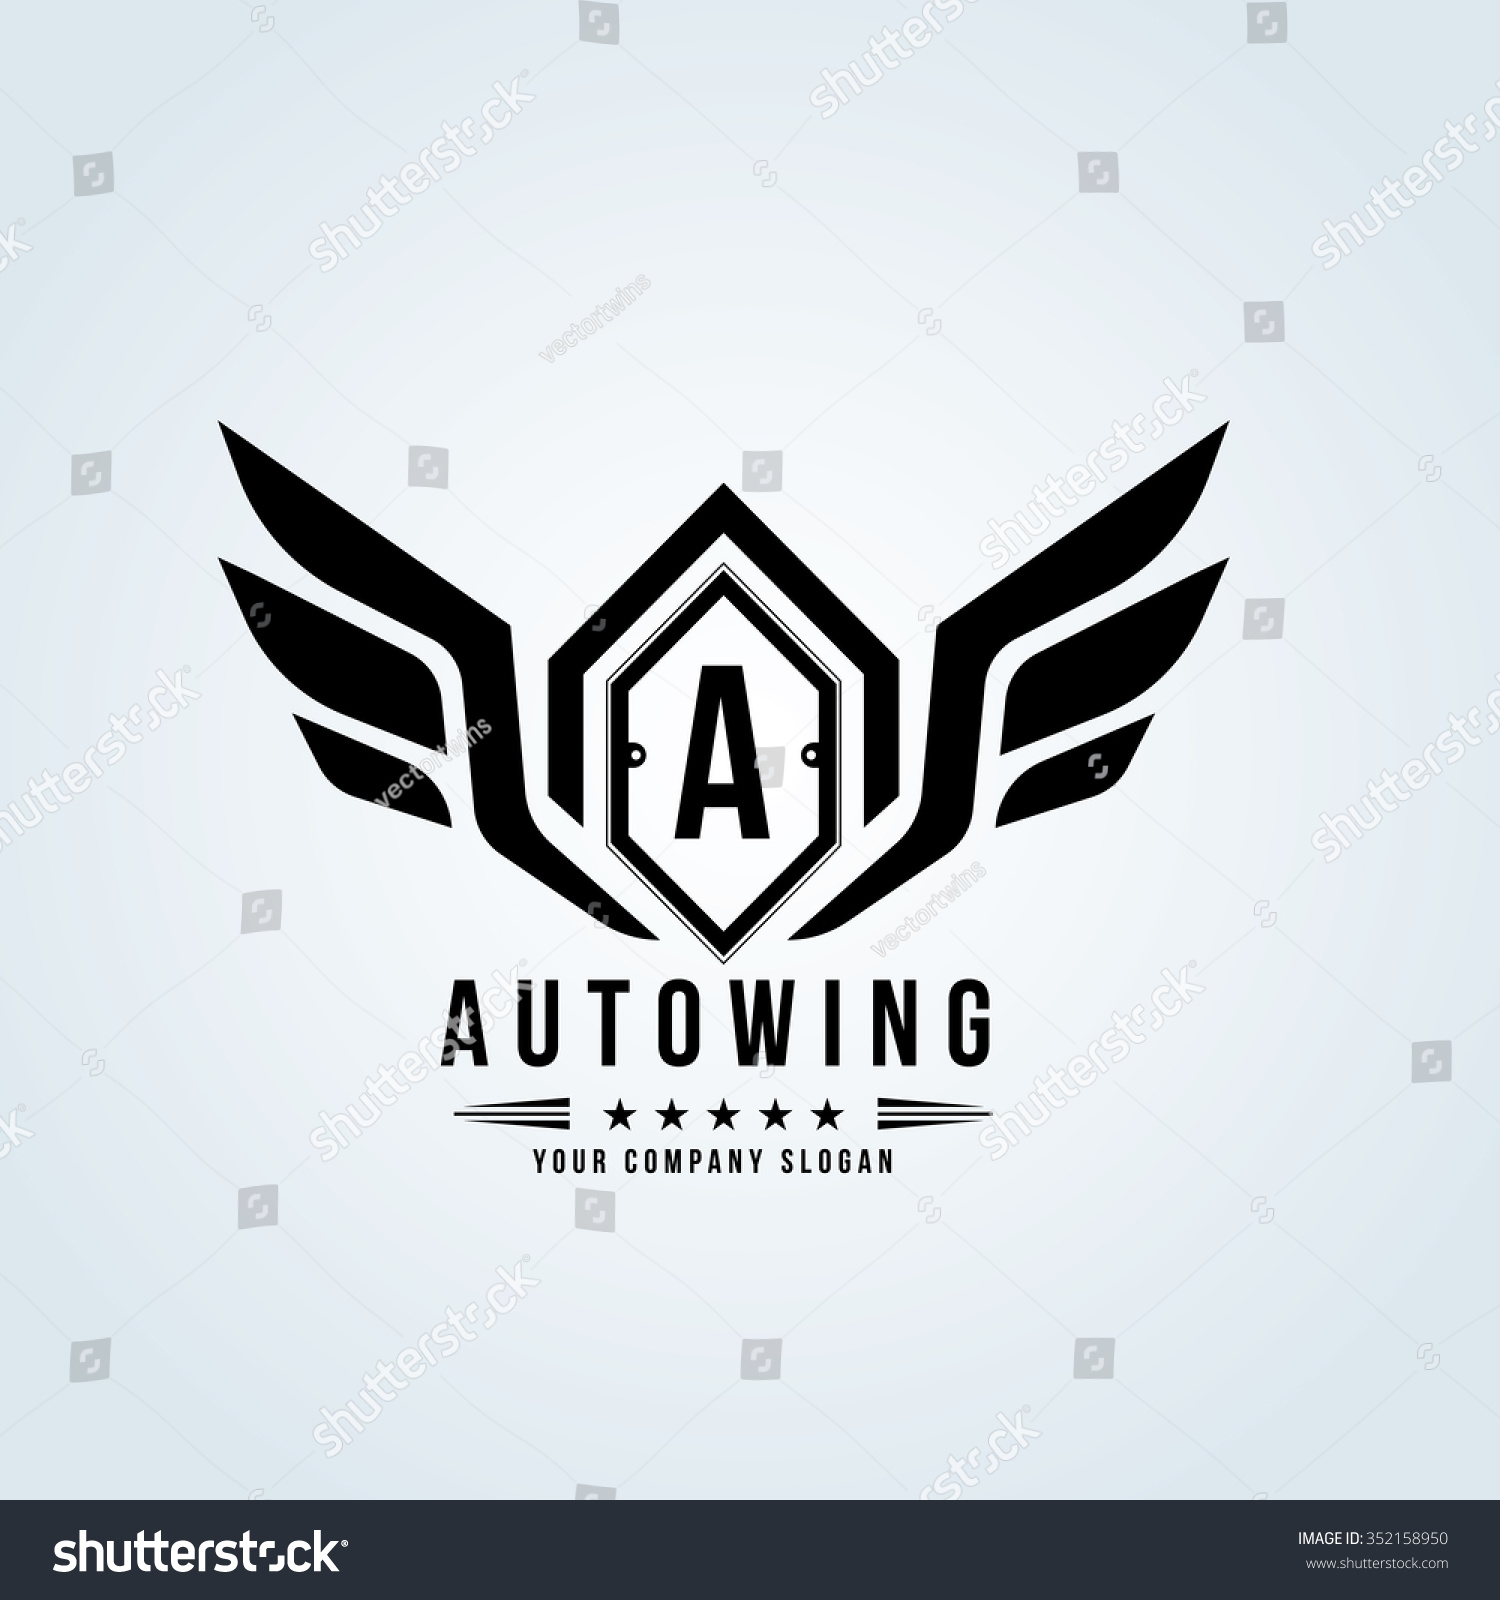 auto wingautomotive logocrests logovector logo template stock vector 352158950 shutterstock. Black Bedroom Furniture Sets. Home Design Ideas